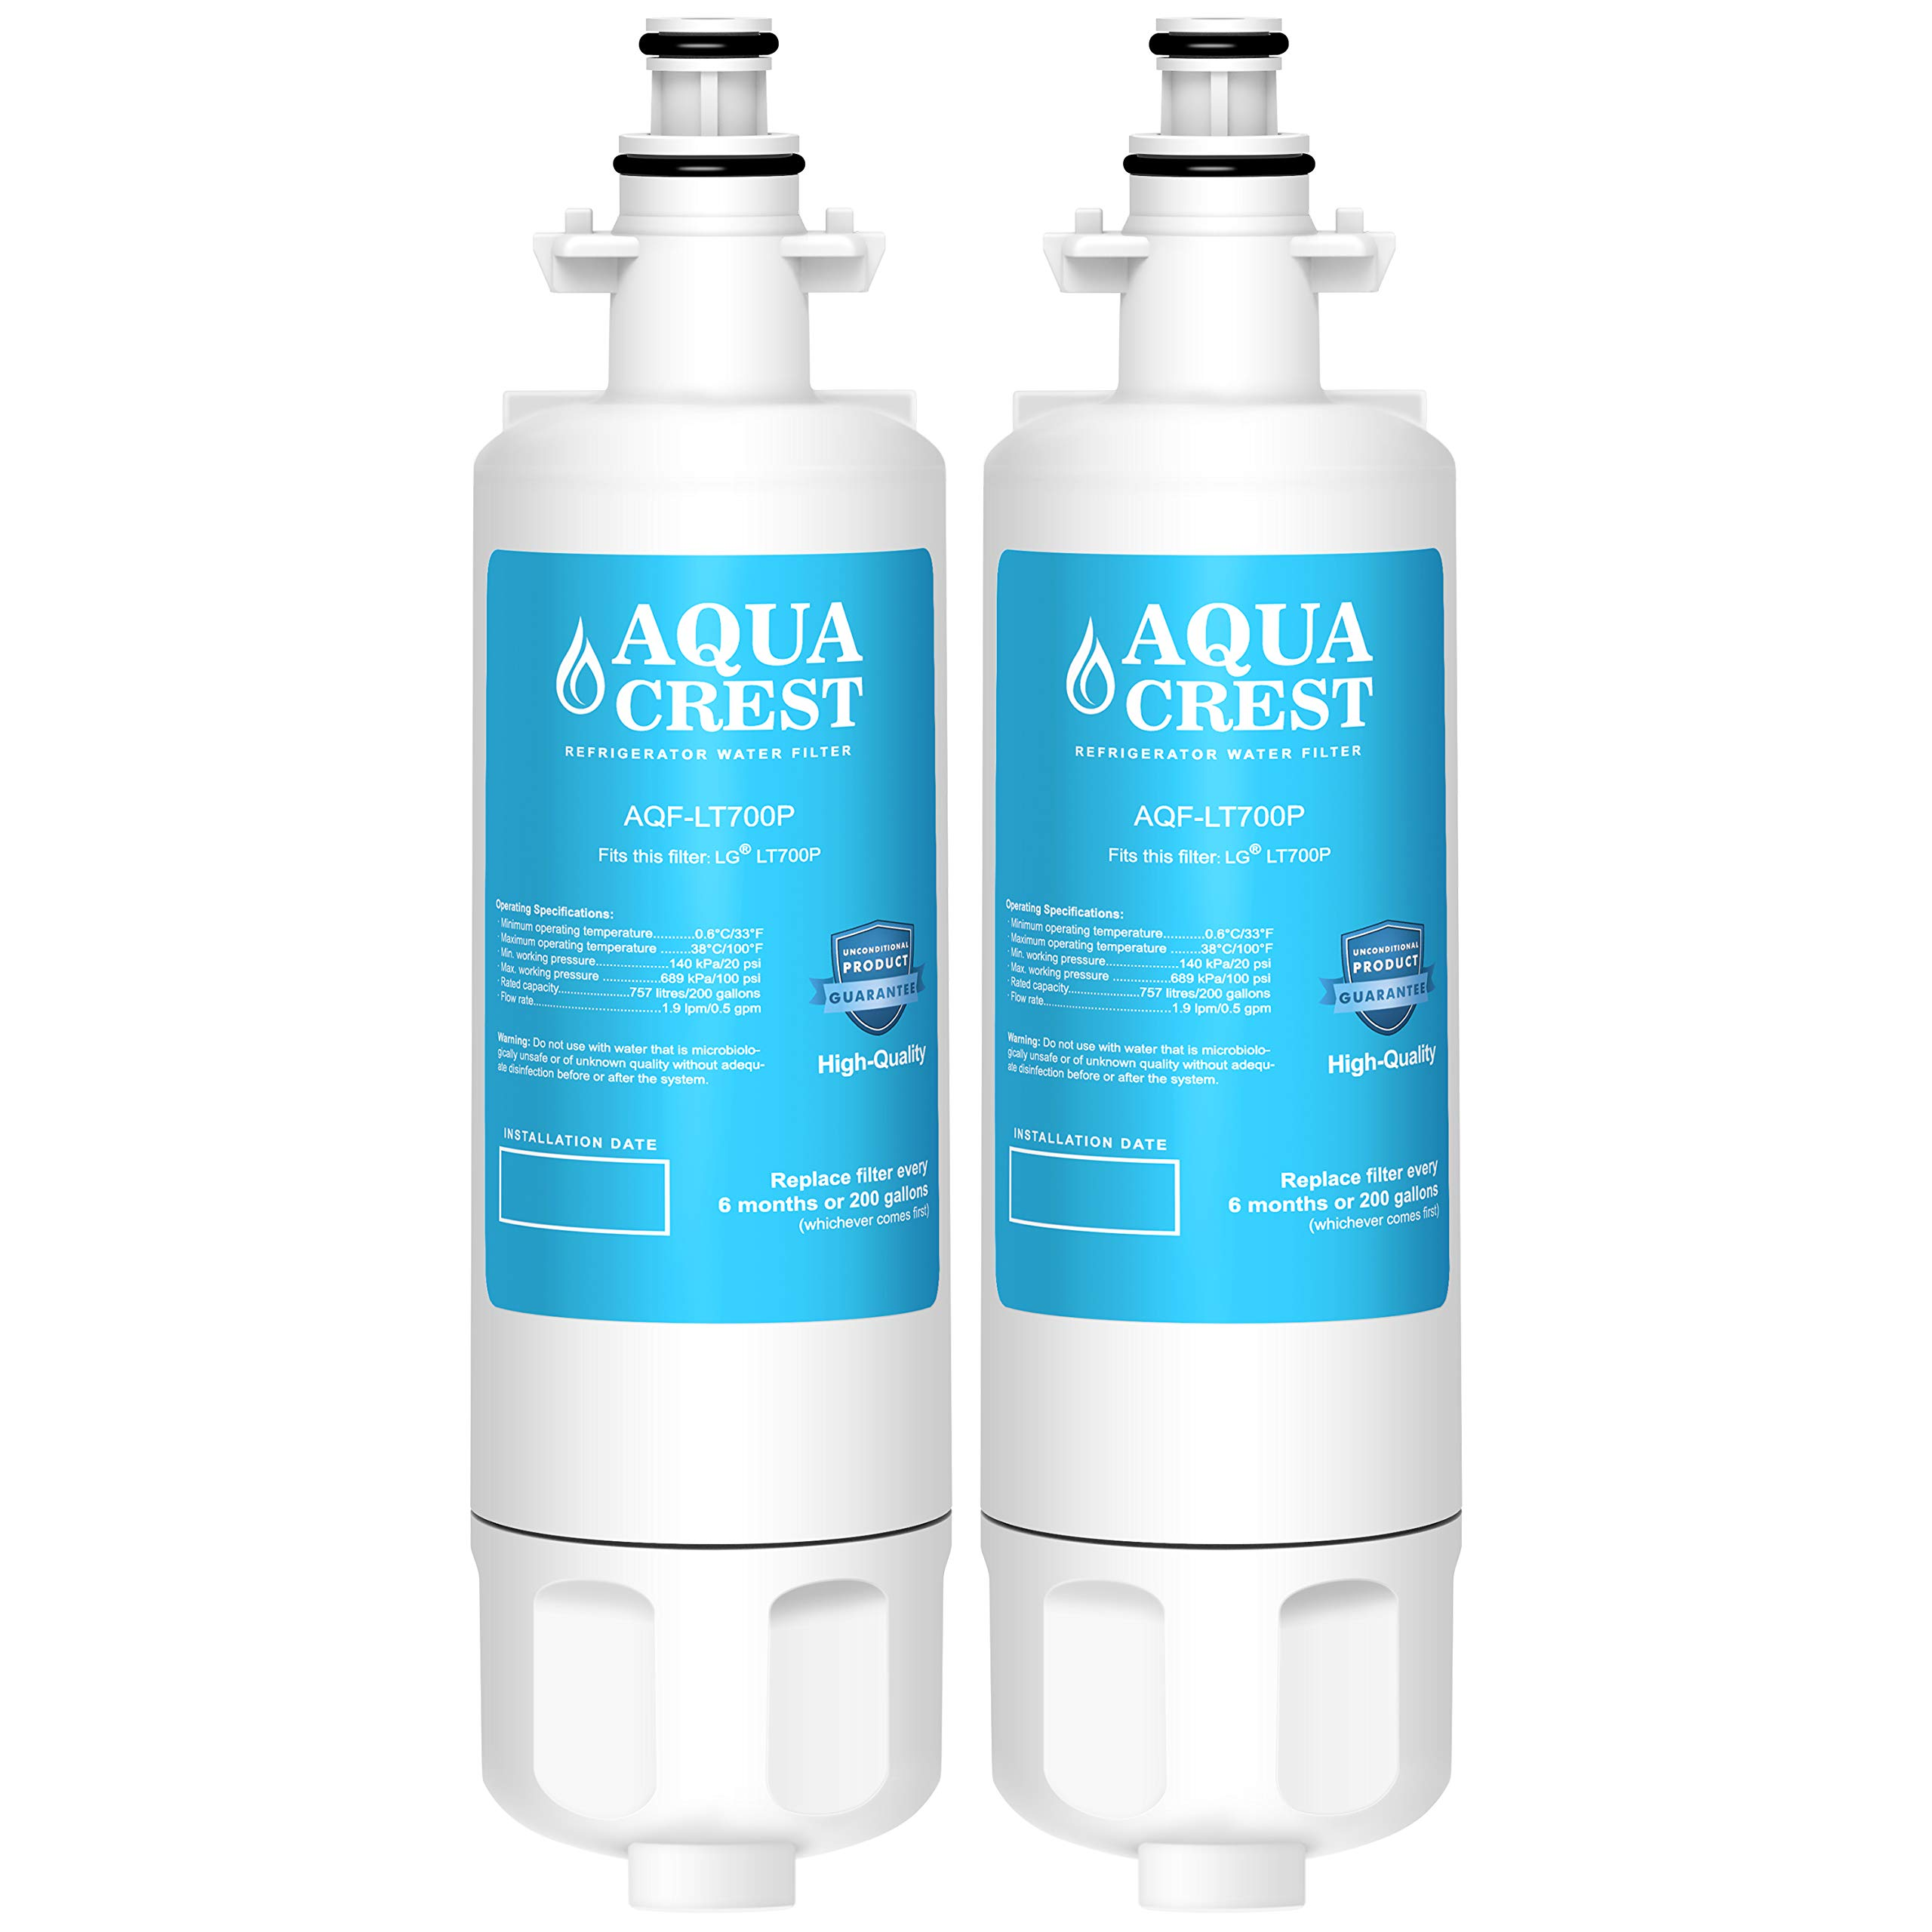 AQUACREST LT700P Replacement Refrigerator Water Filter, Compatible with LG LT700P, Kenmore 9690, 46-9690, ADQ36006101, ADQ36006102 (Pack of 2)